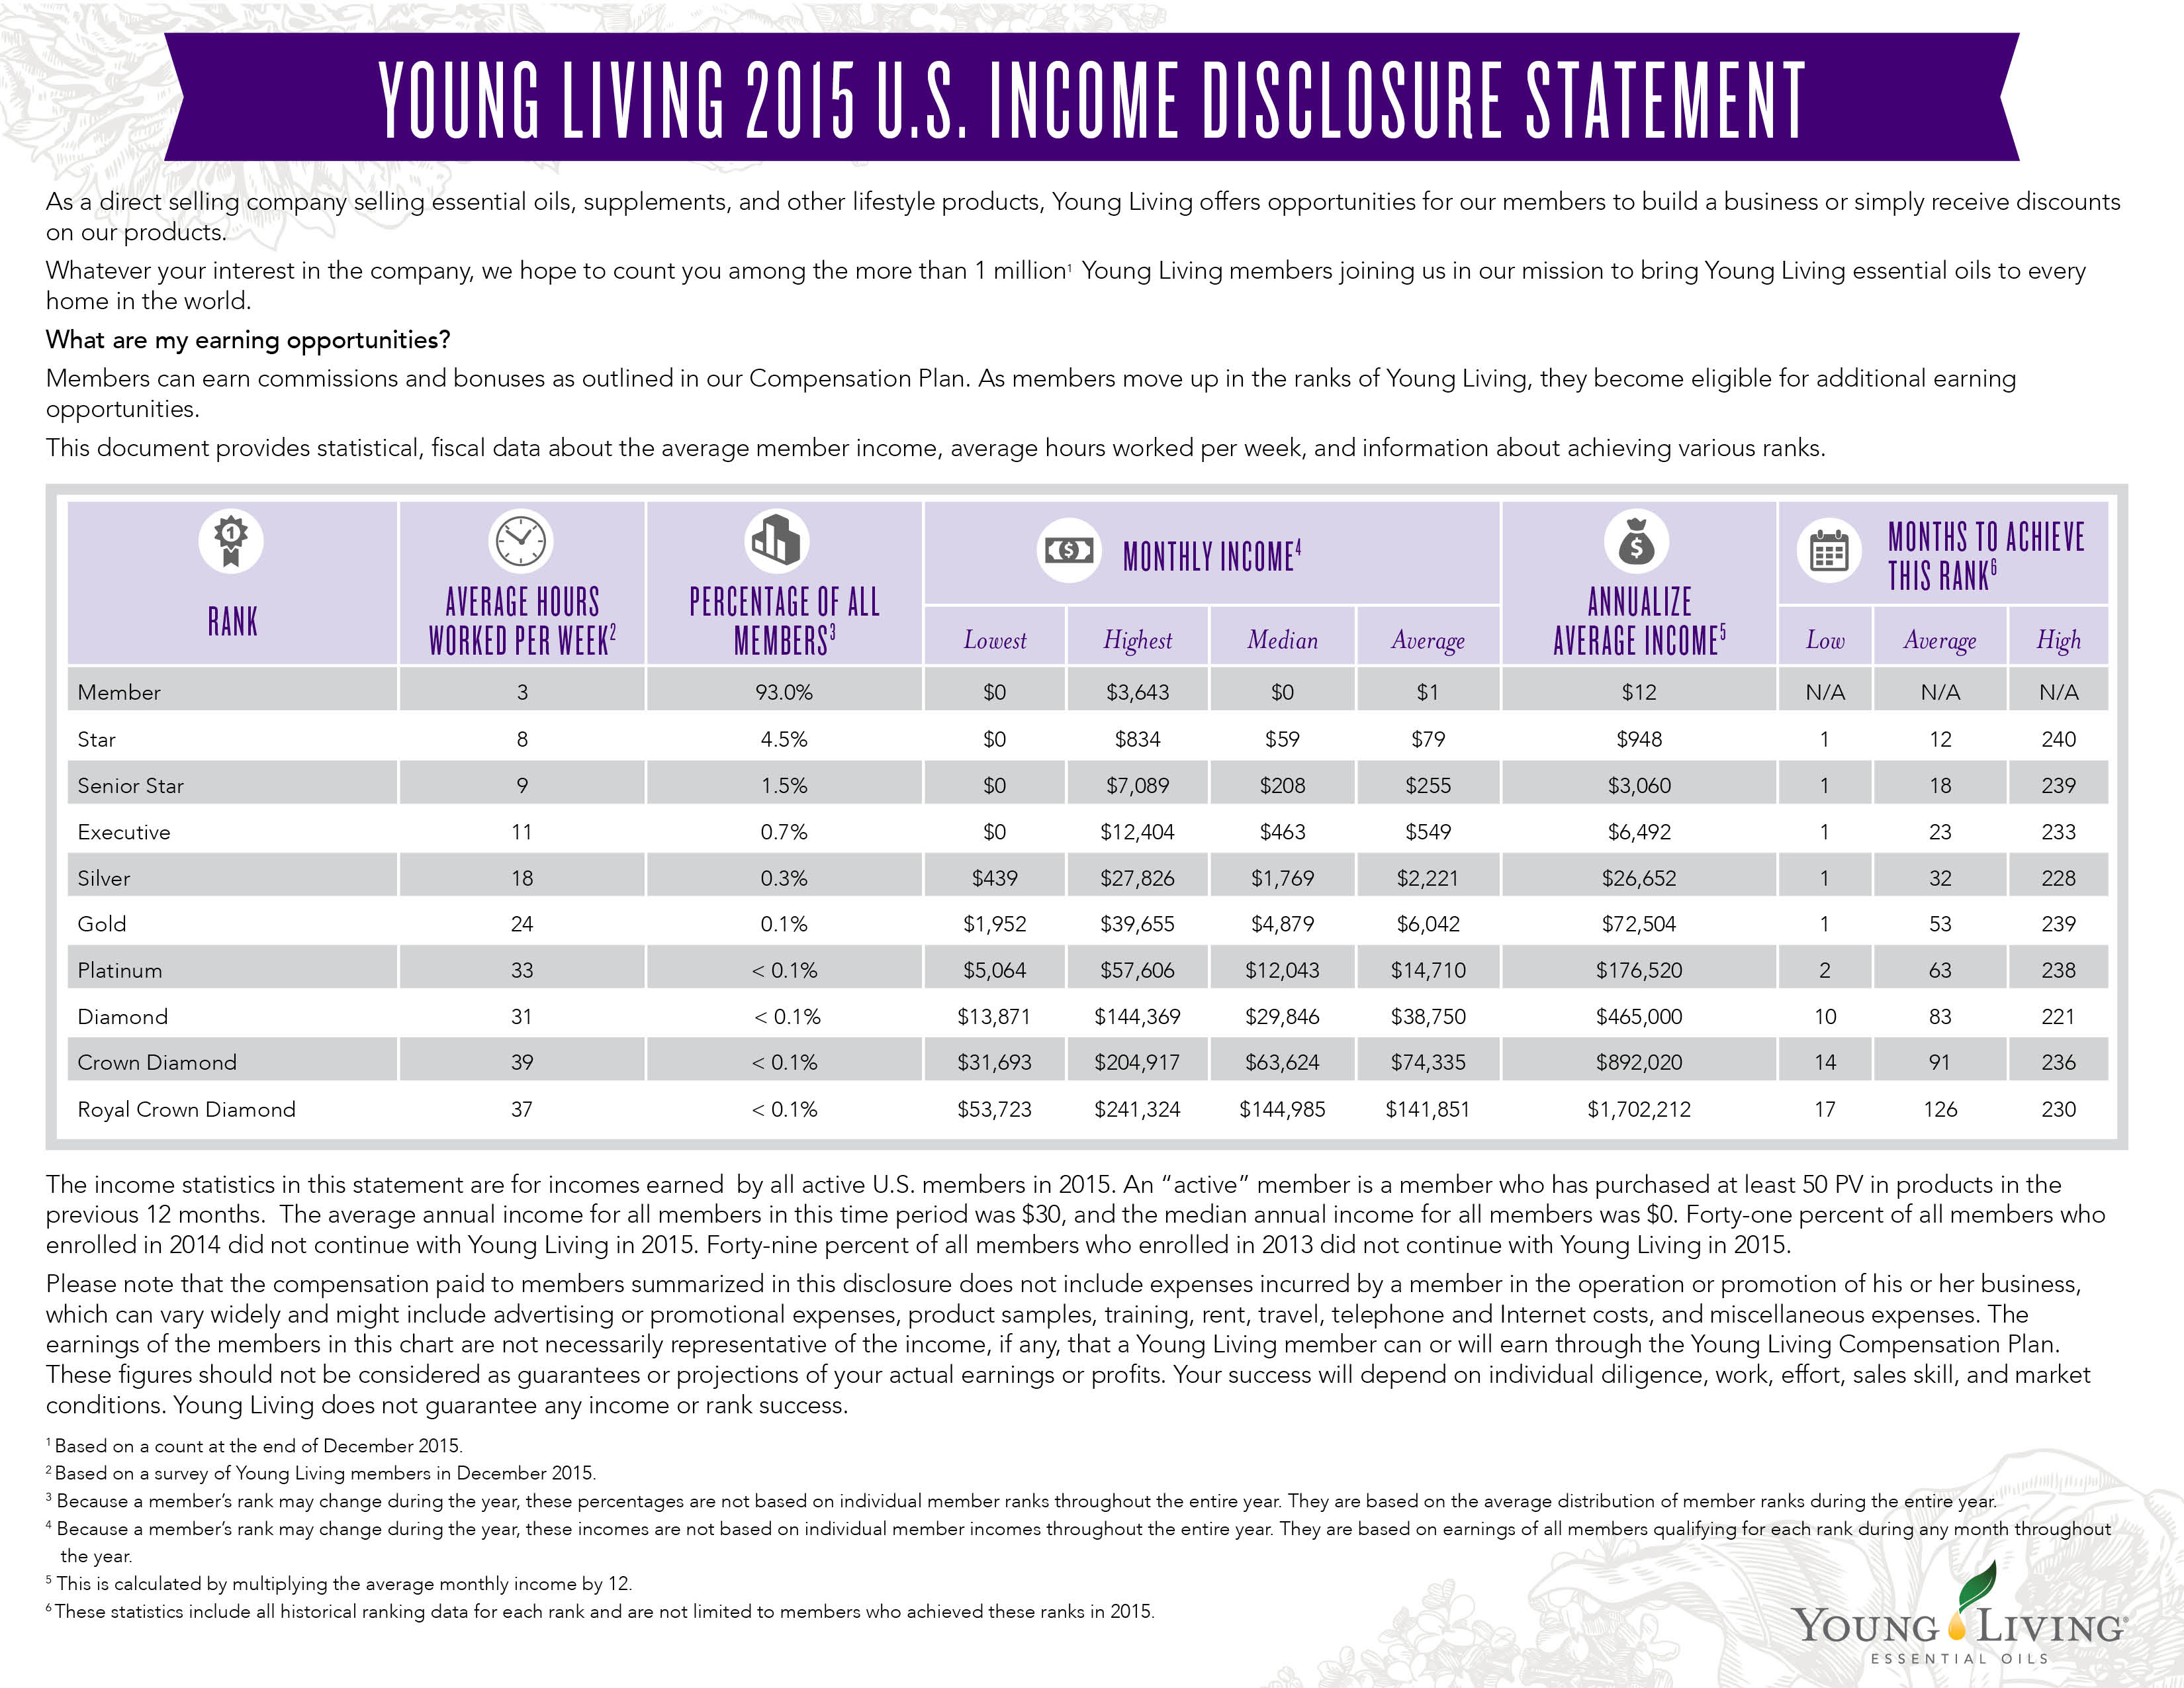 How Much Money Can I Make Selling Young Living Essential Oils?